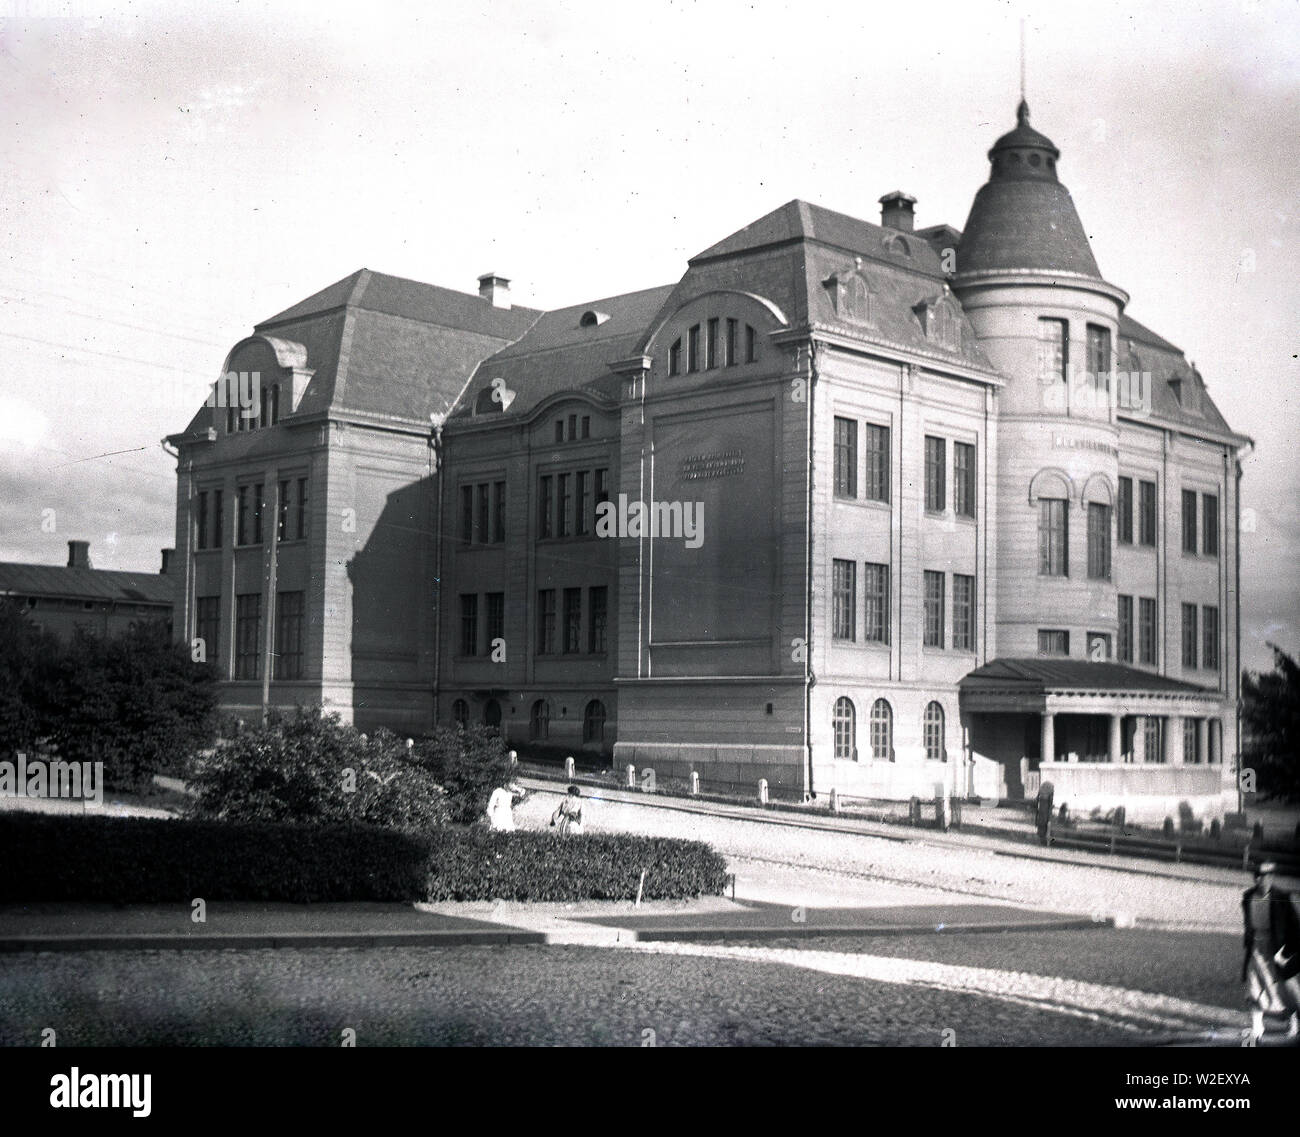 The Classical High School of Tampere (Tammerfors) ca. 1920 - Stock Image